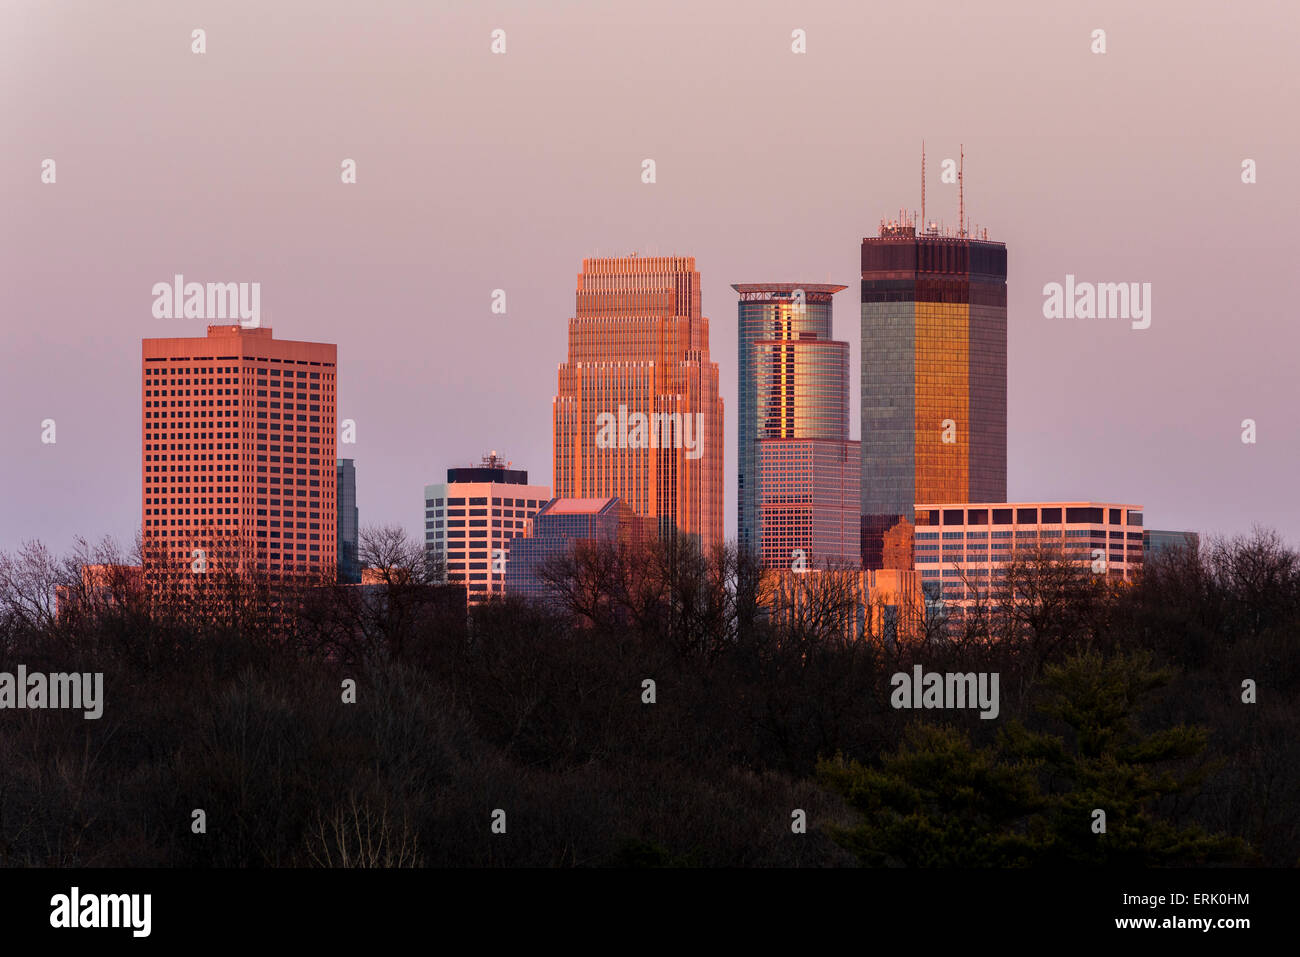 Skyline of the city of Minneapolis at dusk. - Stock Image